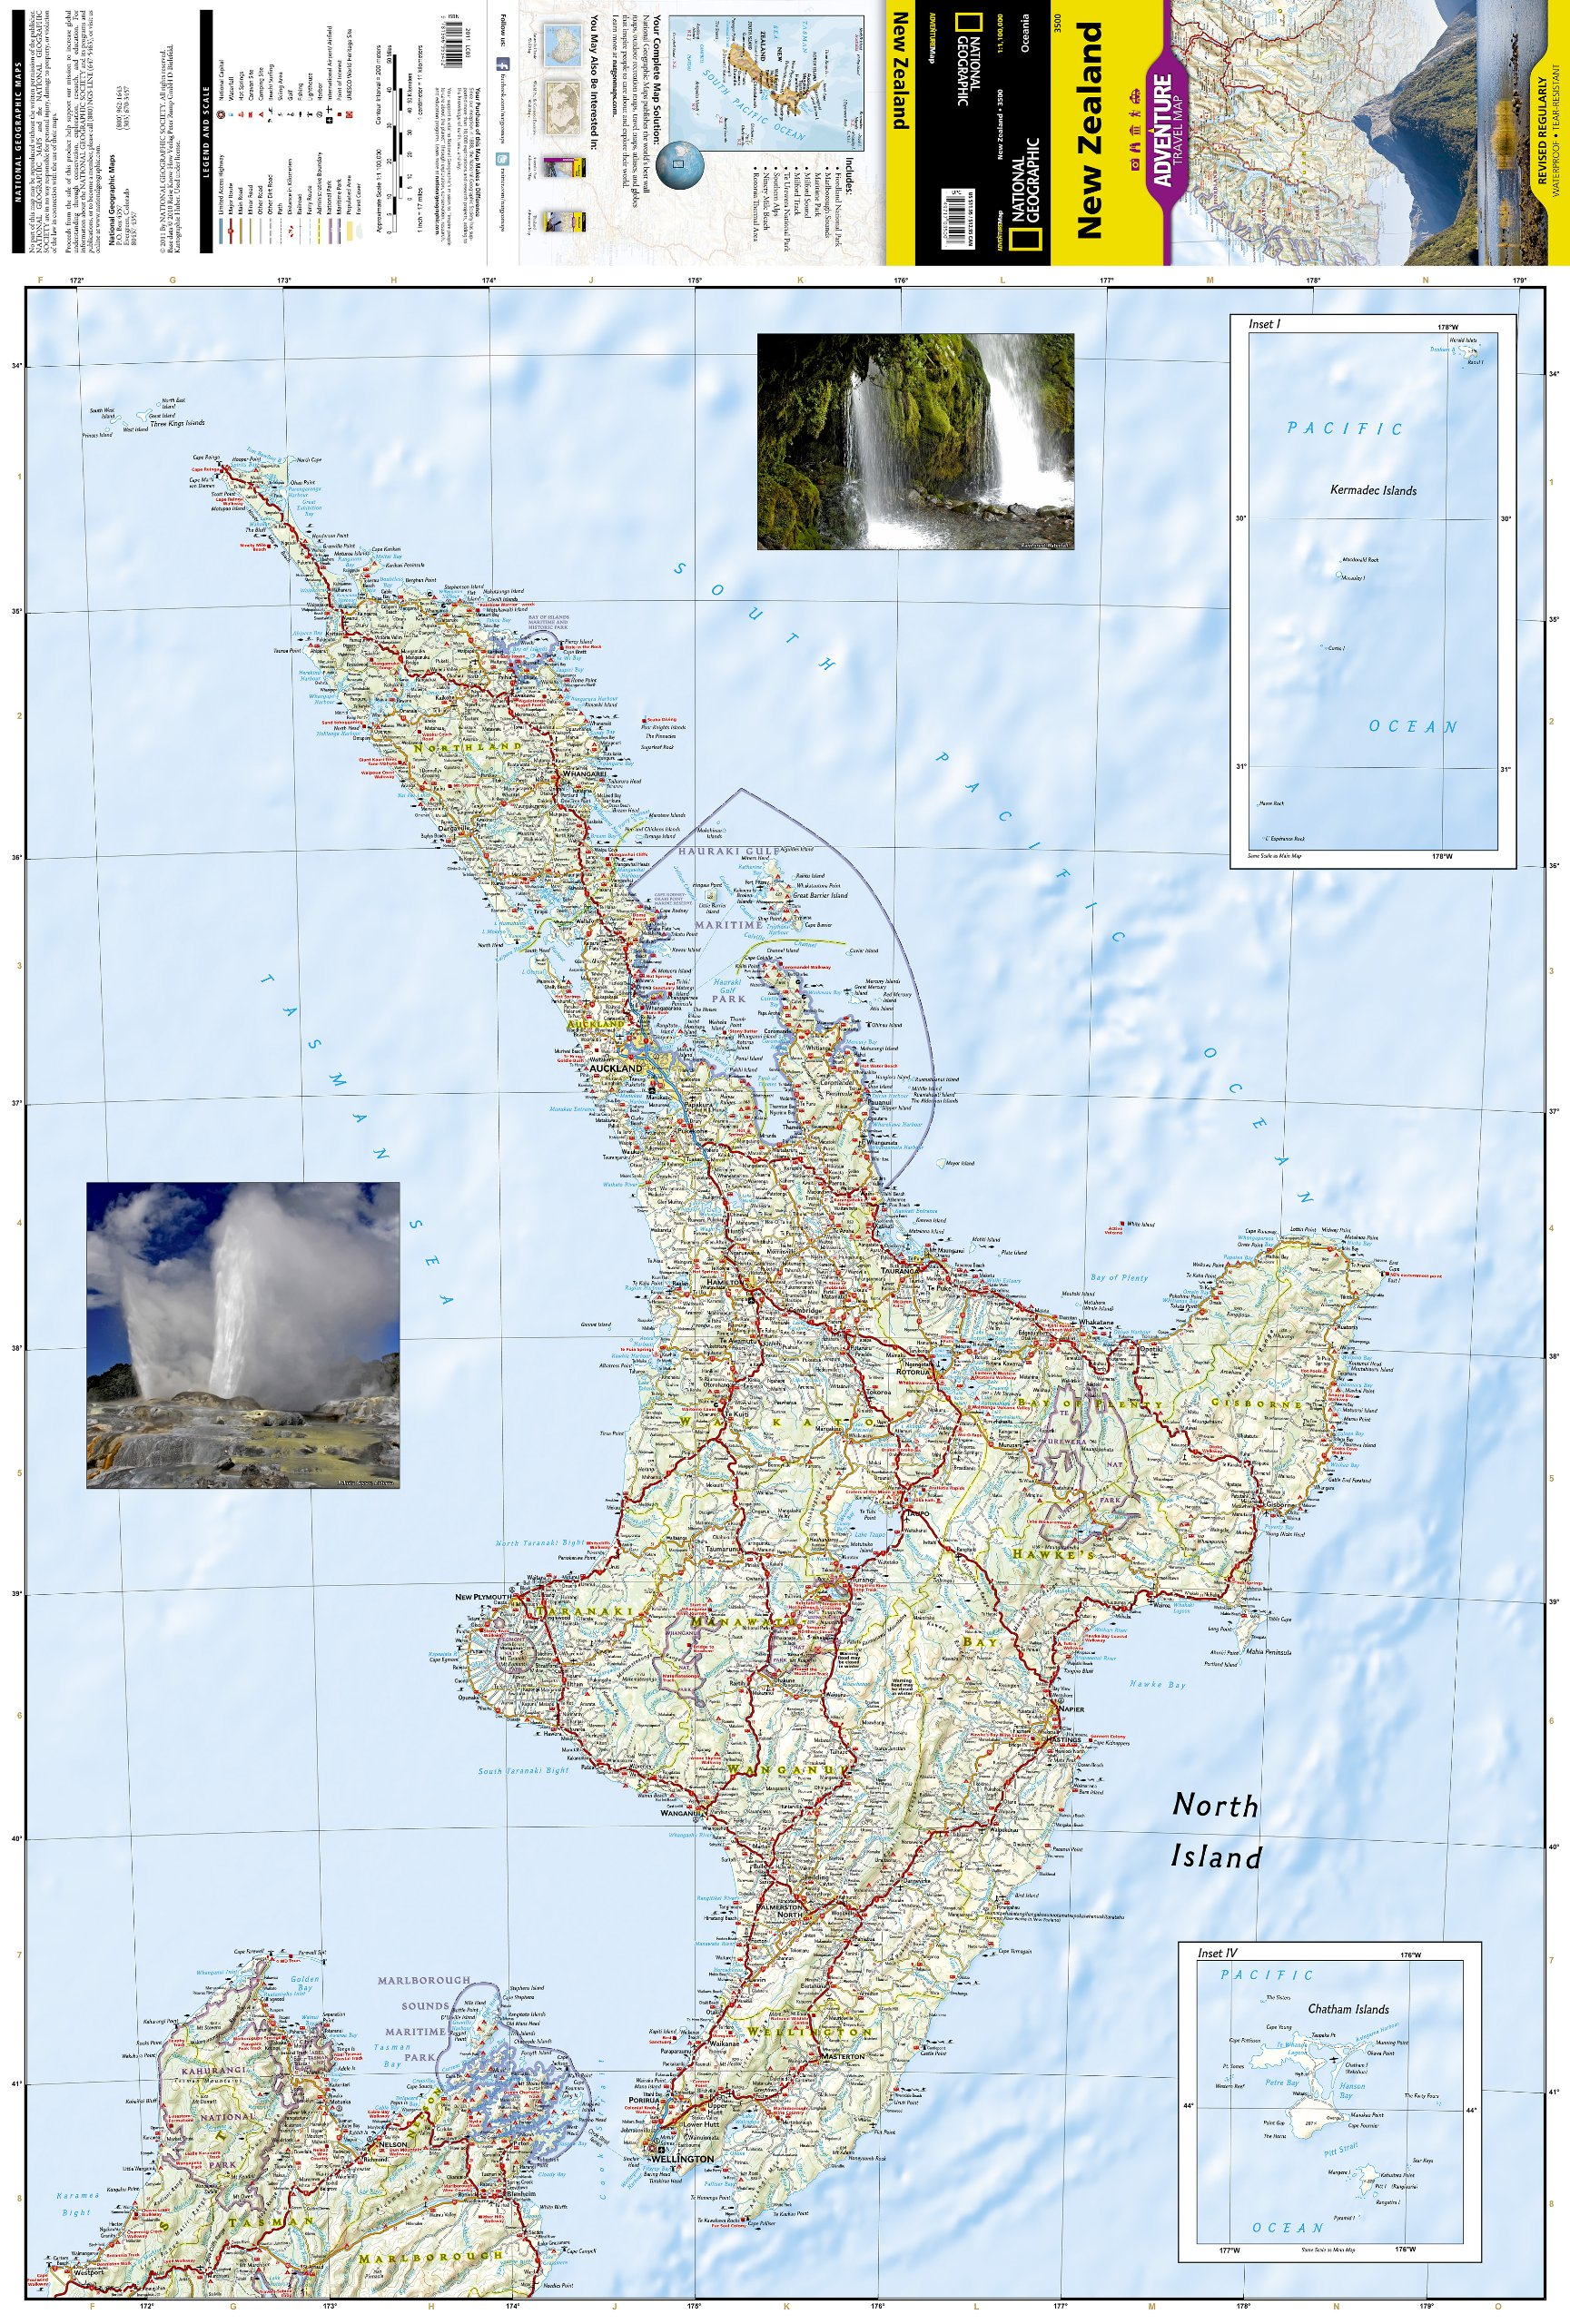 New Zealand Map With Cities And Towns.New Zealand National Geographic Adventure Map National Geographic